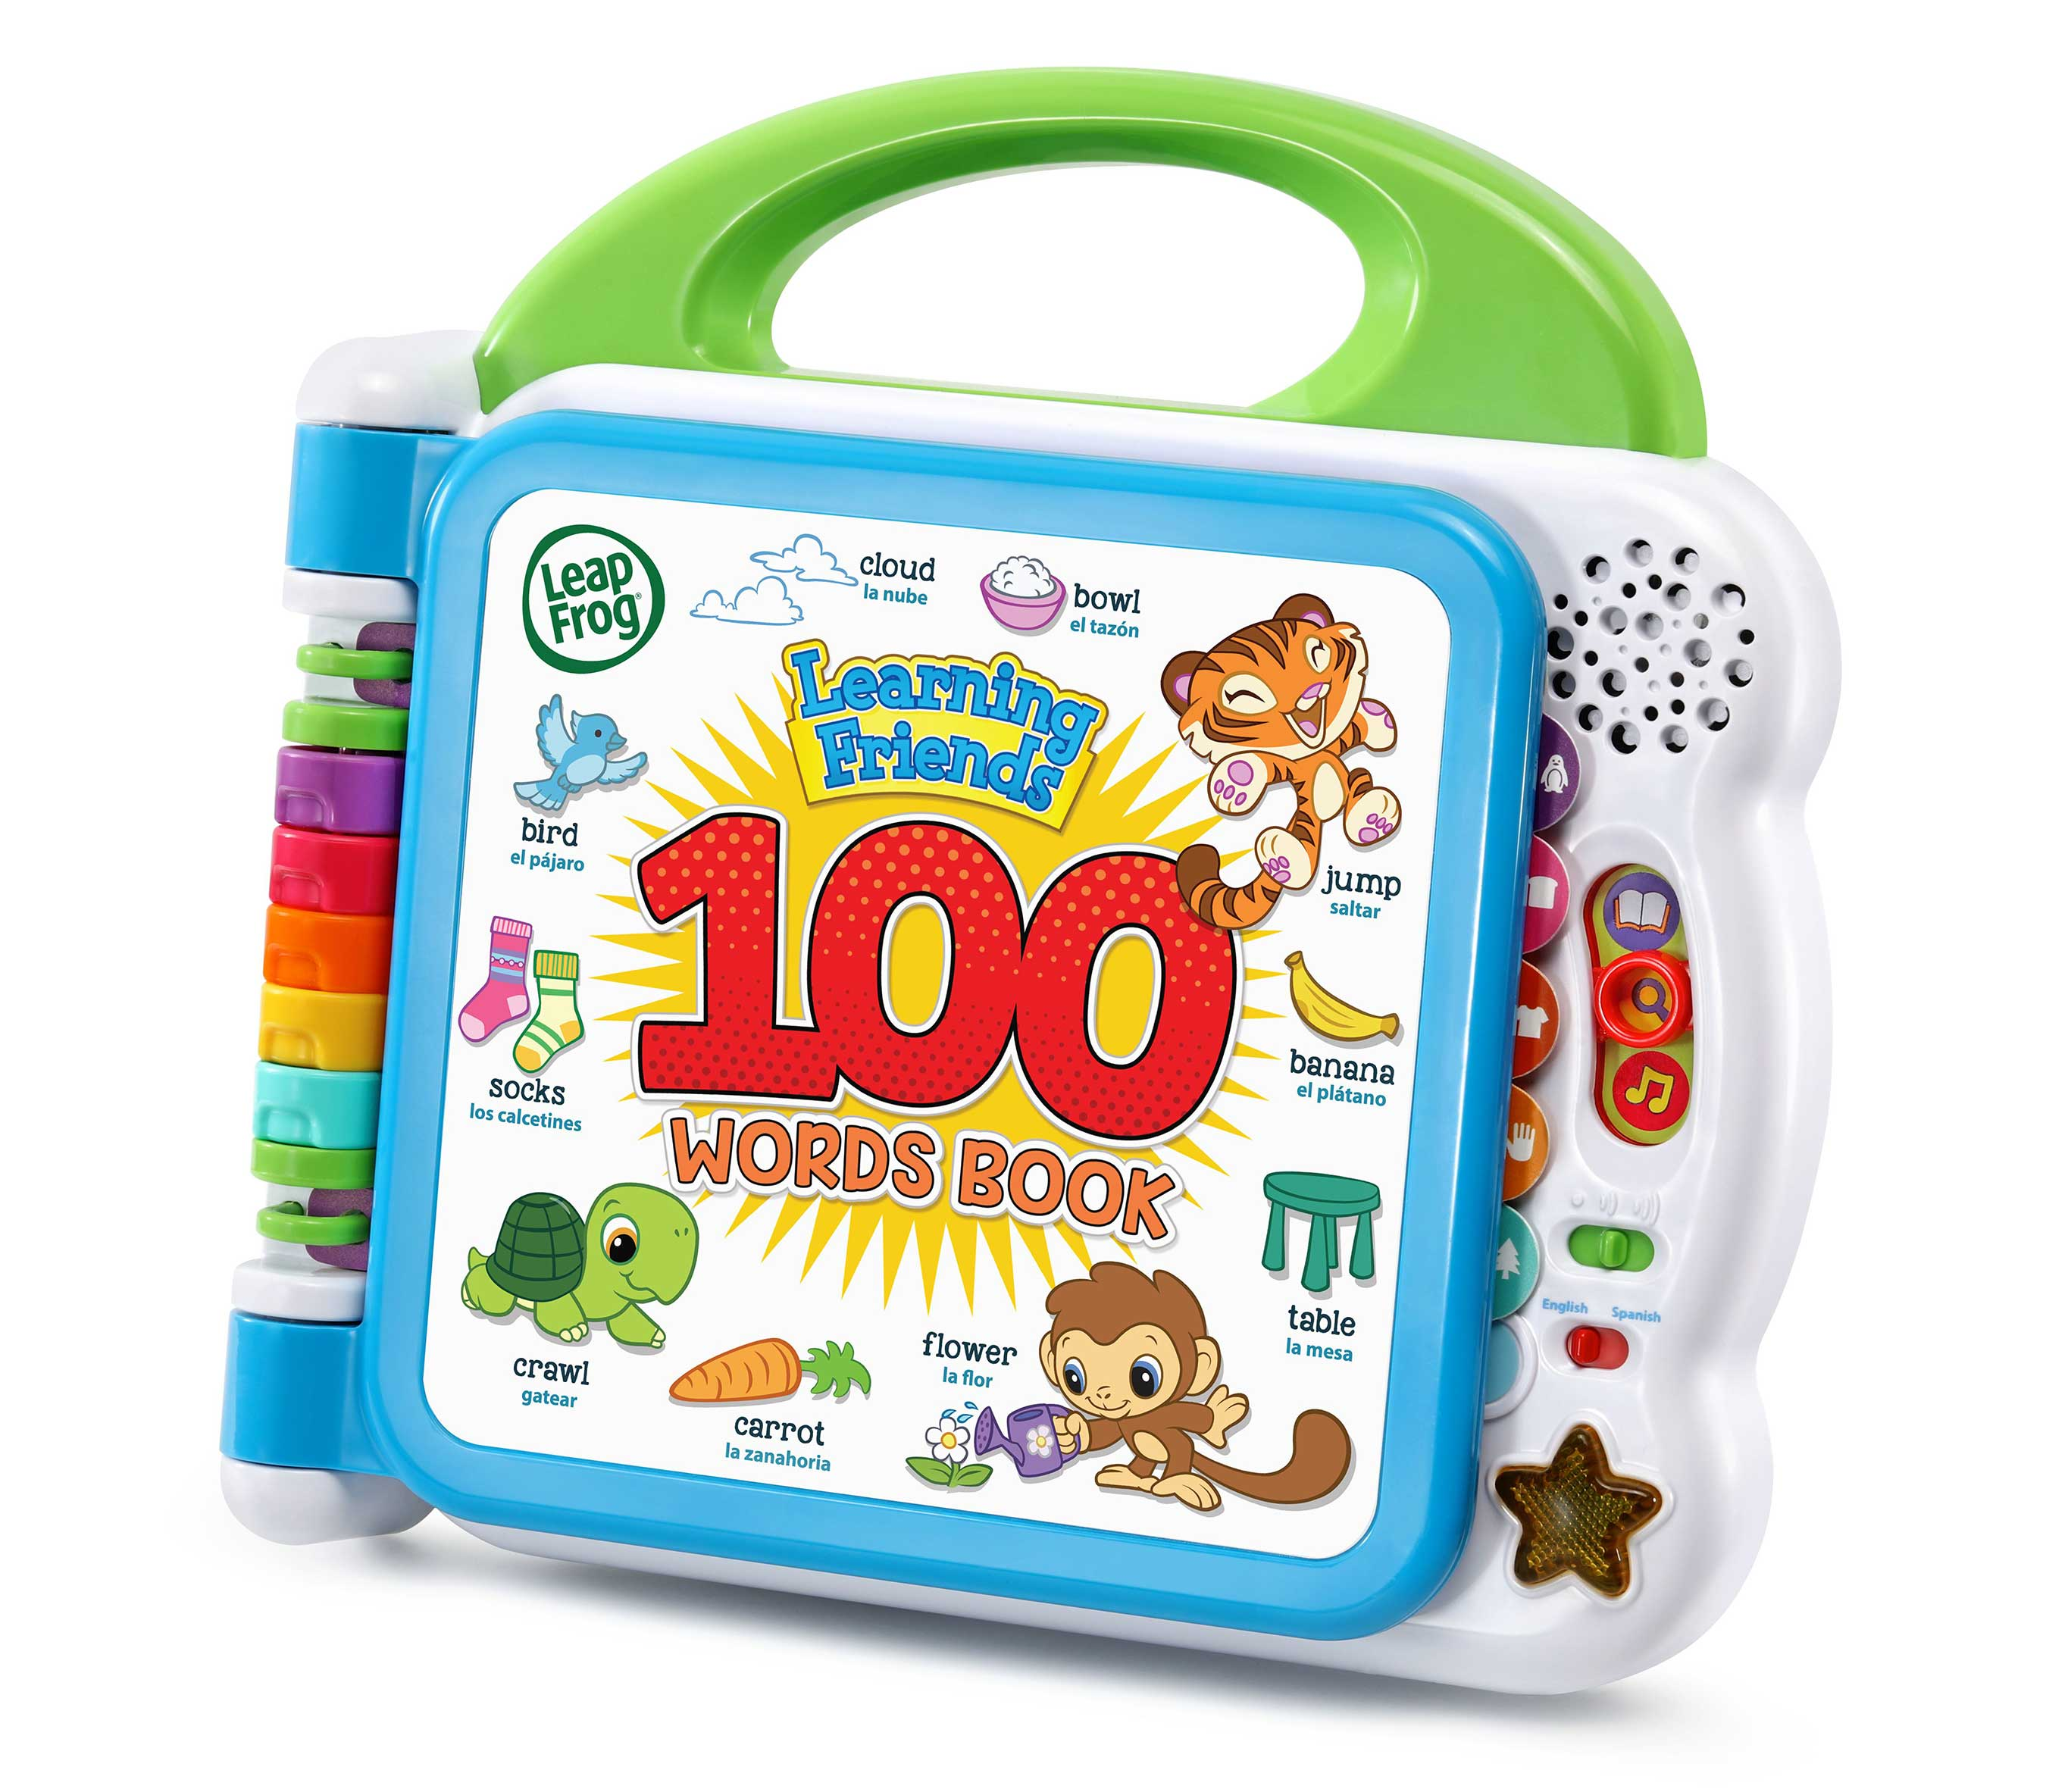 Latest Educational Toys : Leapfrog expands infant and preschool collection with new